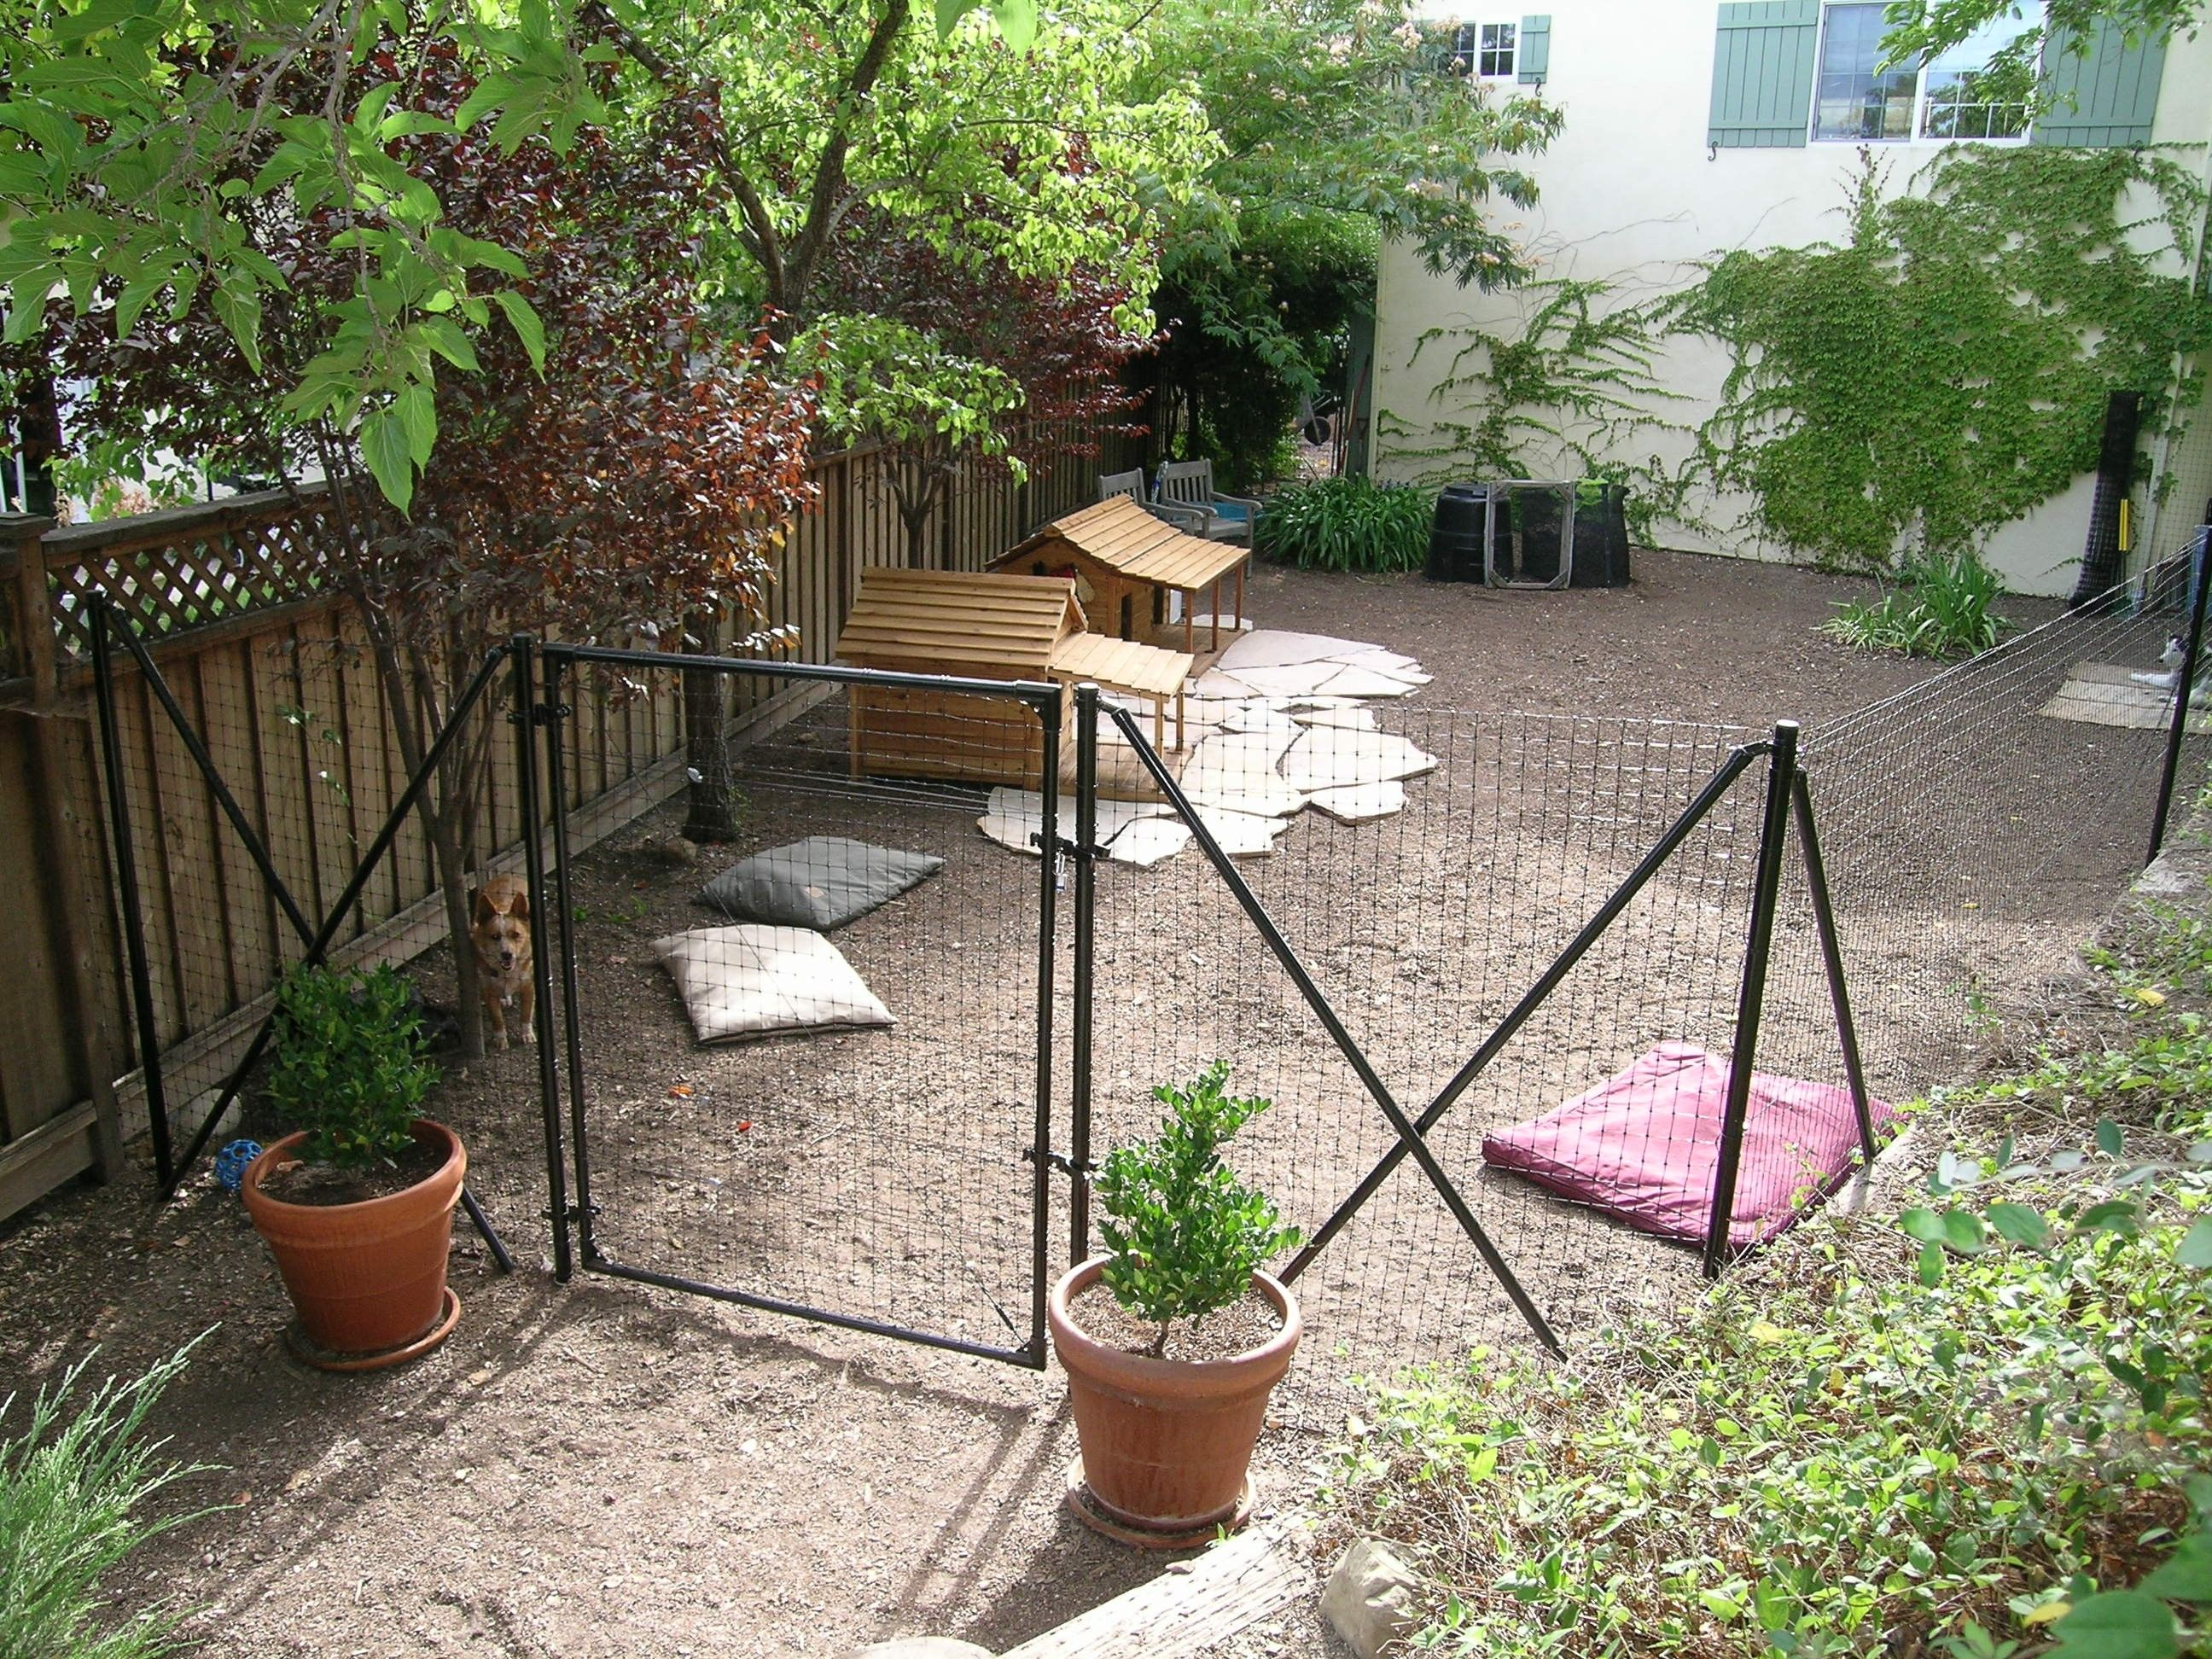 Backyard Dog Fence Ideas dog fence and deck Heres A Cost Dog Fence Kit Which Is An Effective Way To Enclose Your Back Yard